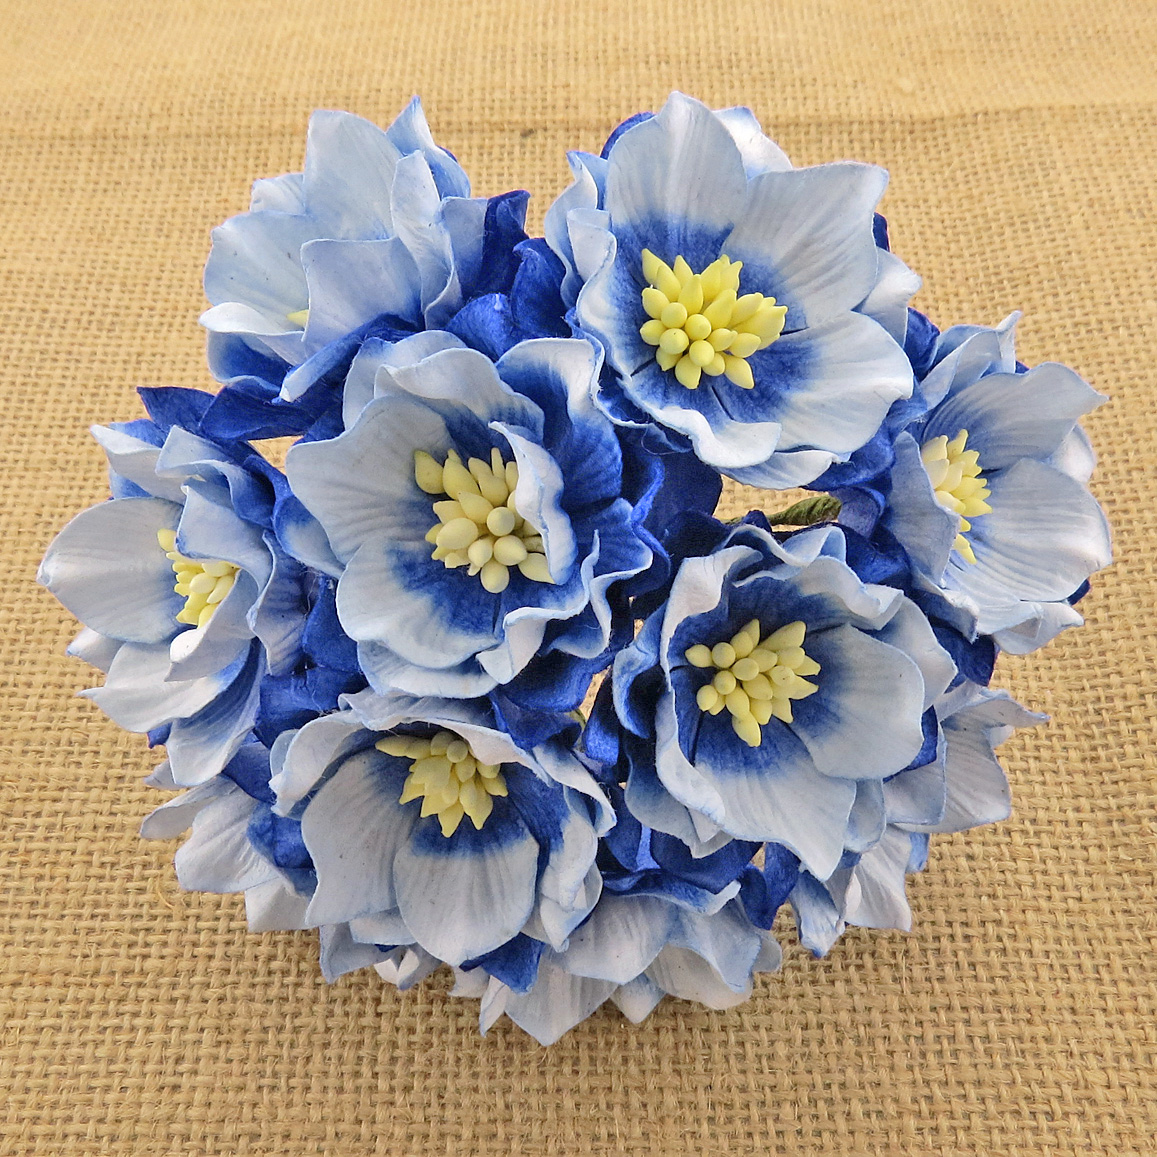 25 2 Tone Sapphire Blue Mulberry Paper Lotus Flowers Saa 107